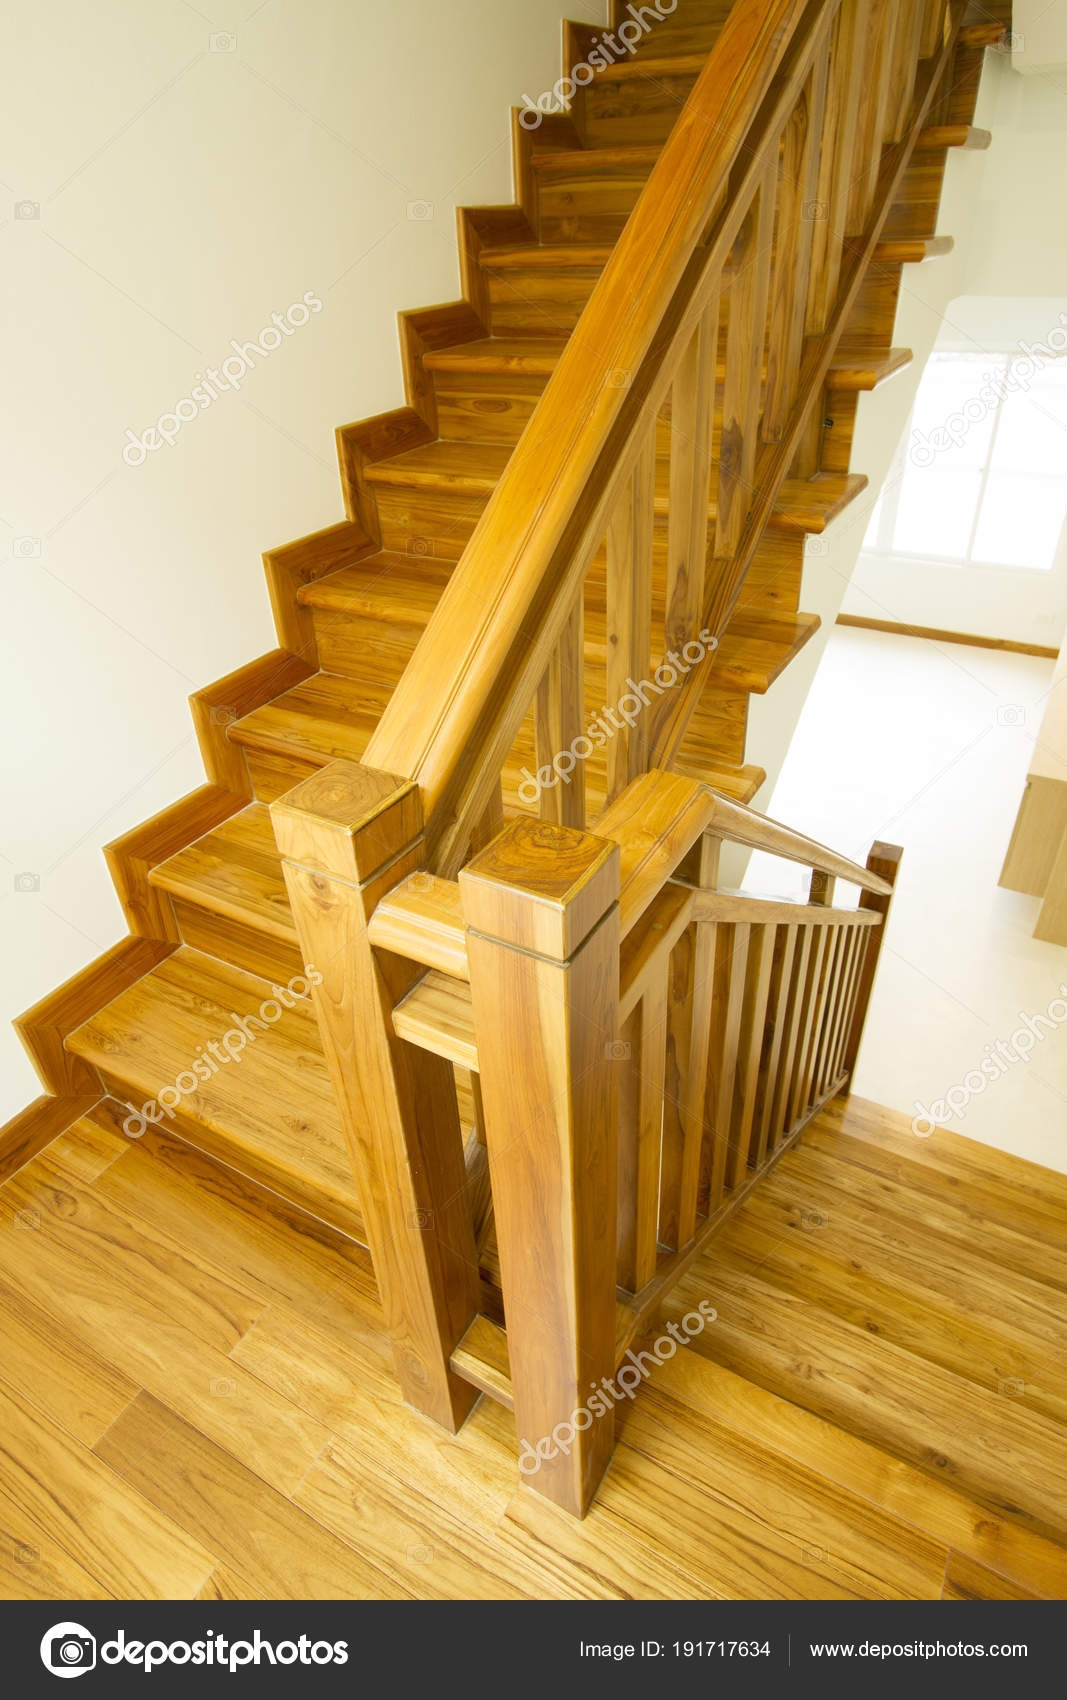 House Interior Modern Wooden Staircase — Stock Photo © Drpnncpp   Wood Stairs In House   Reclaimed Wood   Natural Wood   Residential   Minimalist   Basement